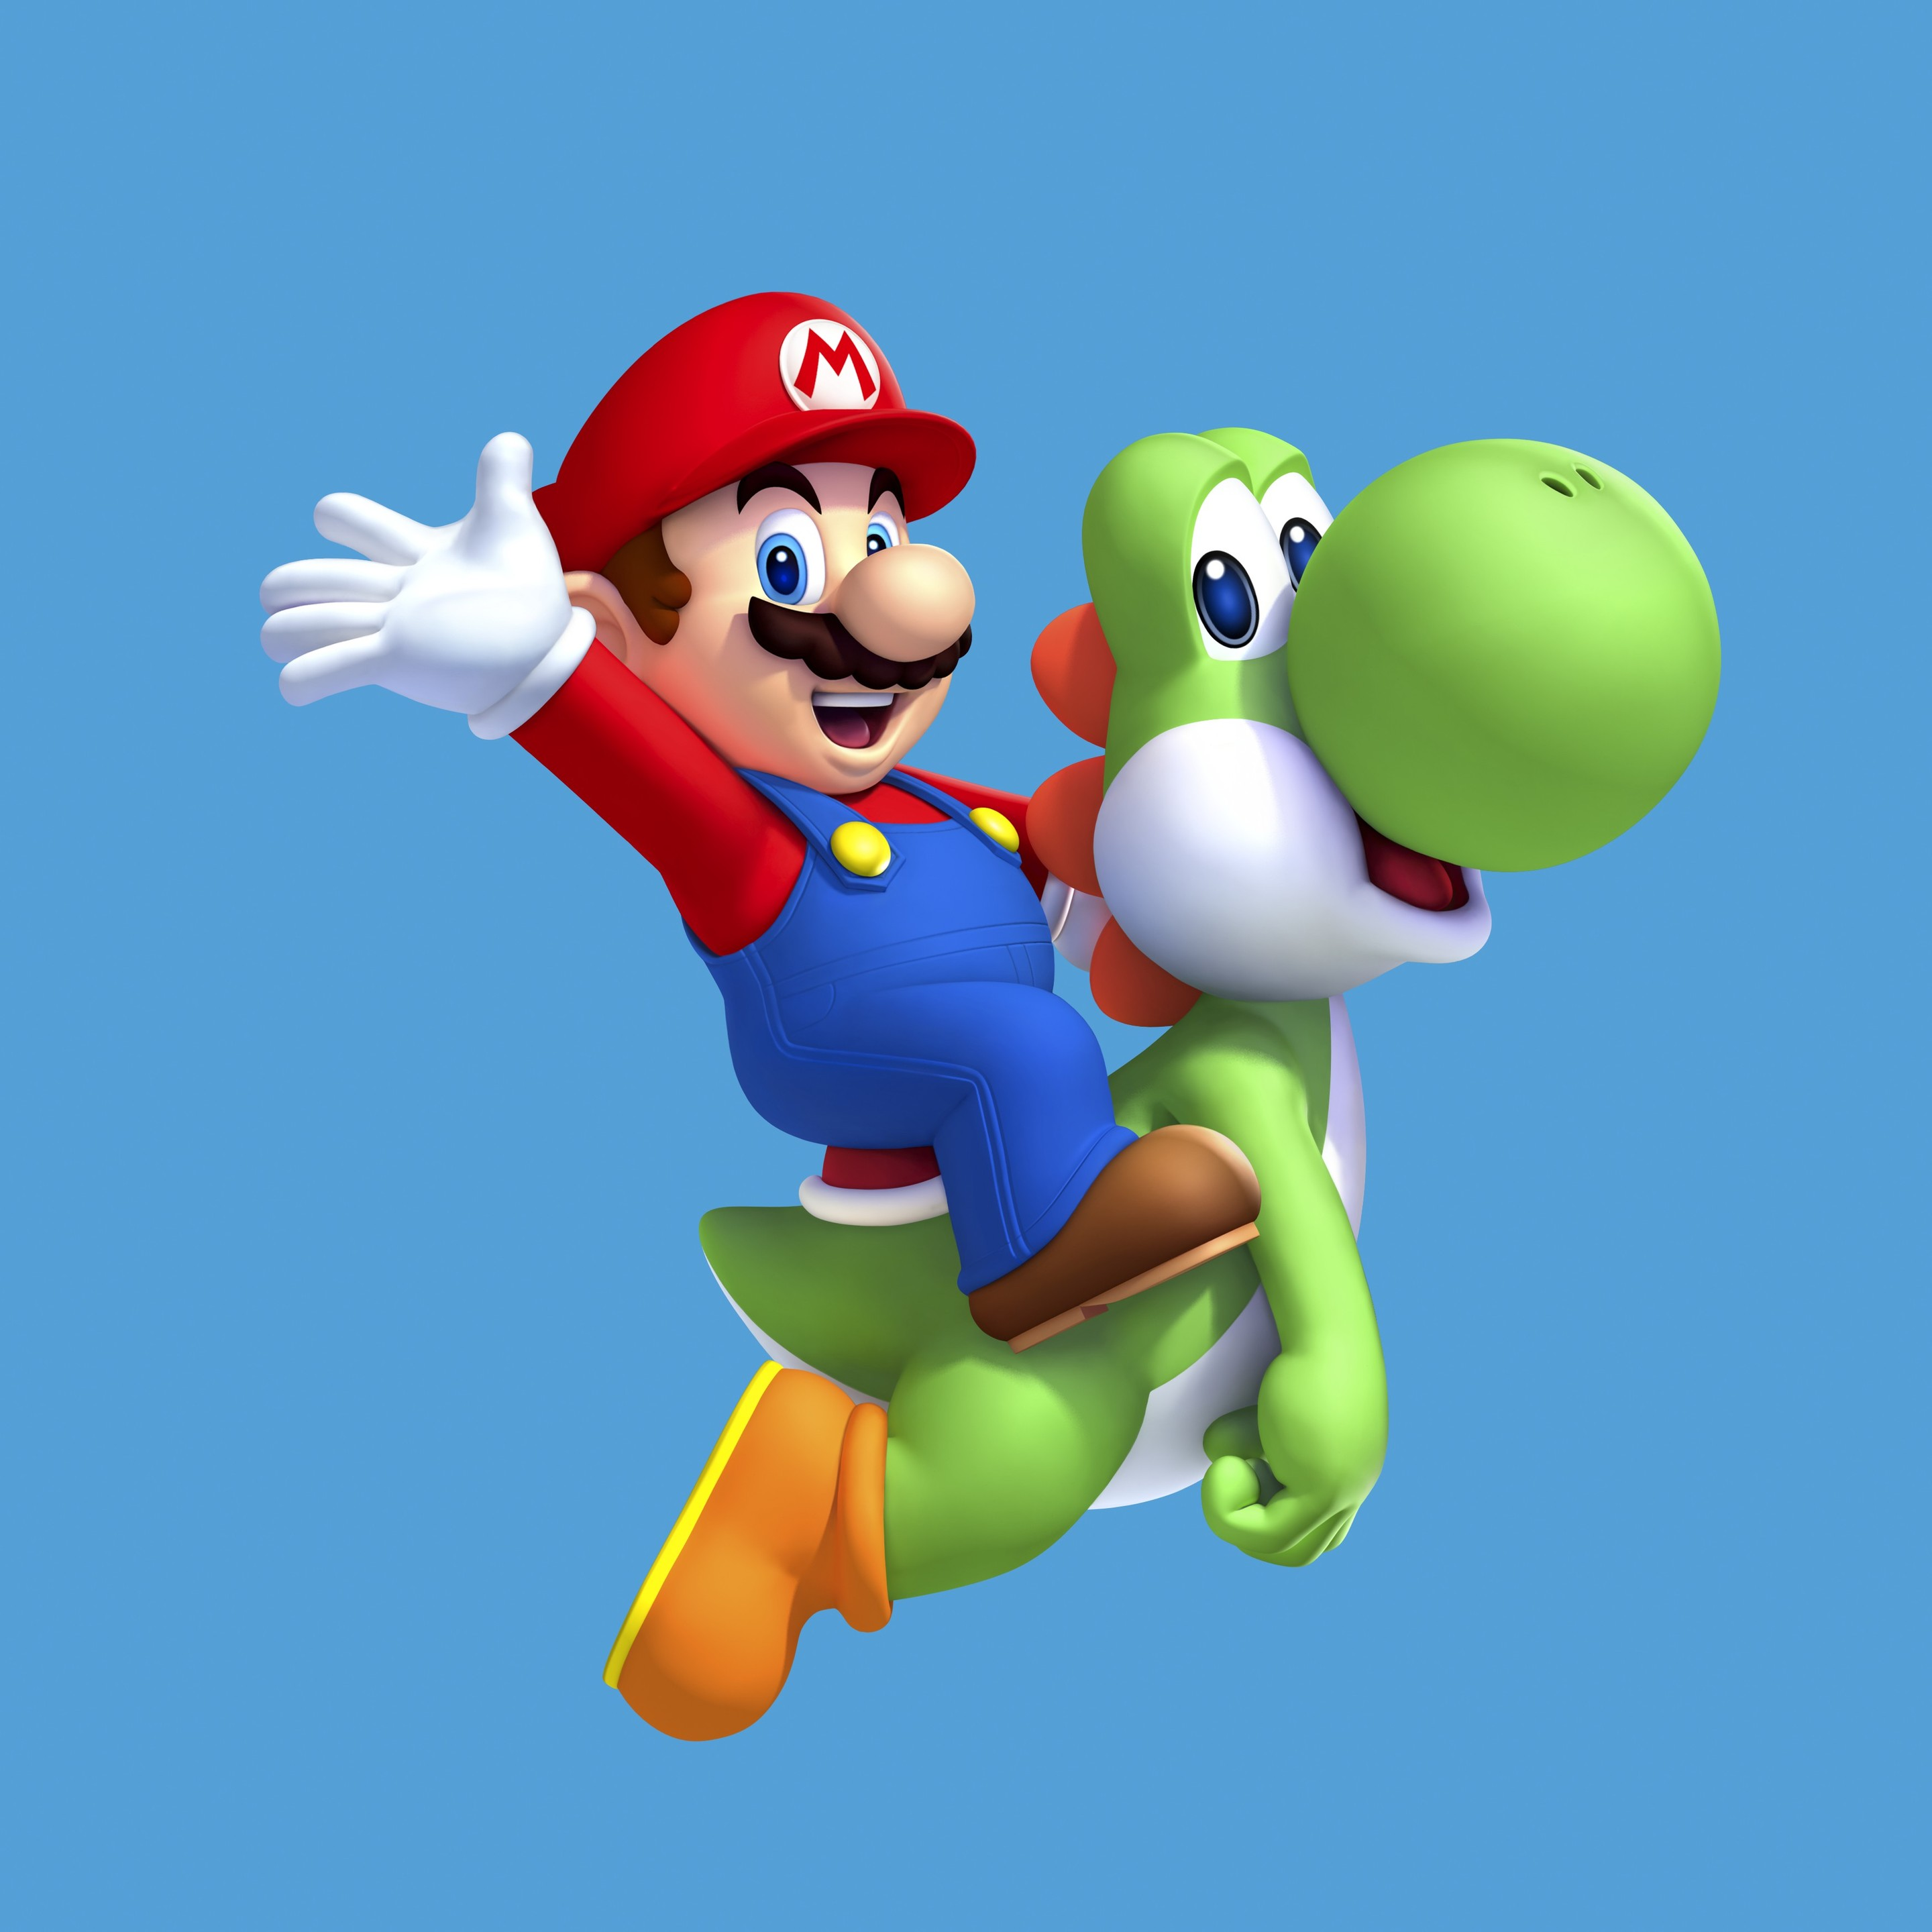 mario bros 3 wallpaper